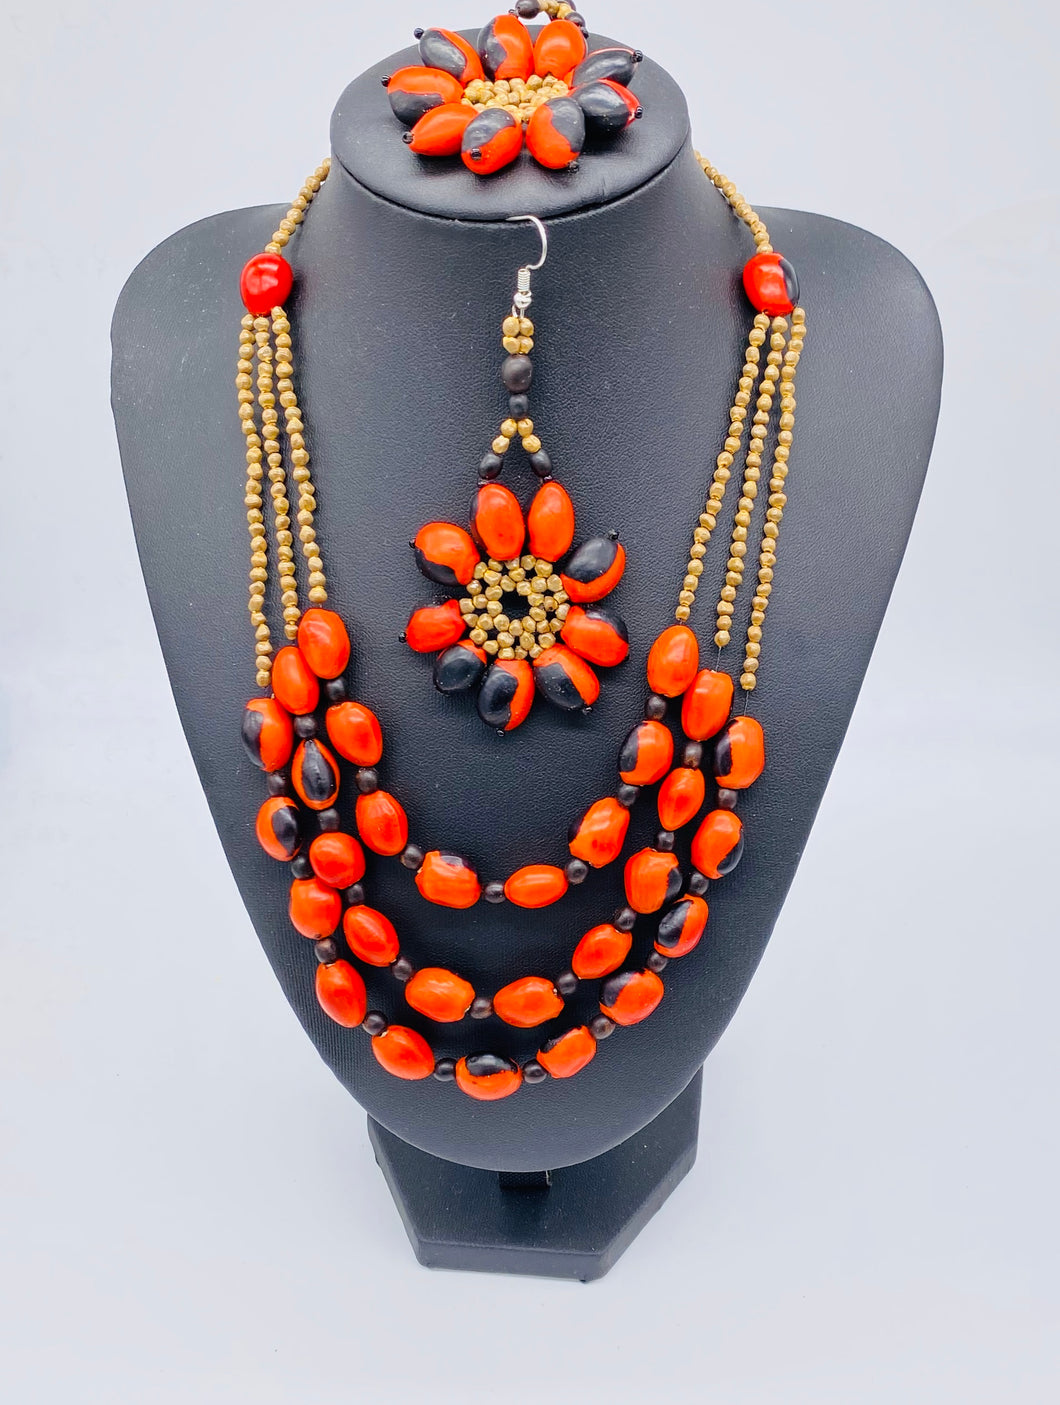 Stunning multi strand red seed necklace with matching earrings